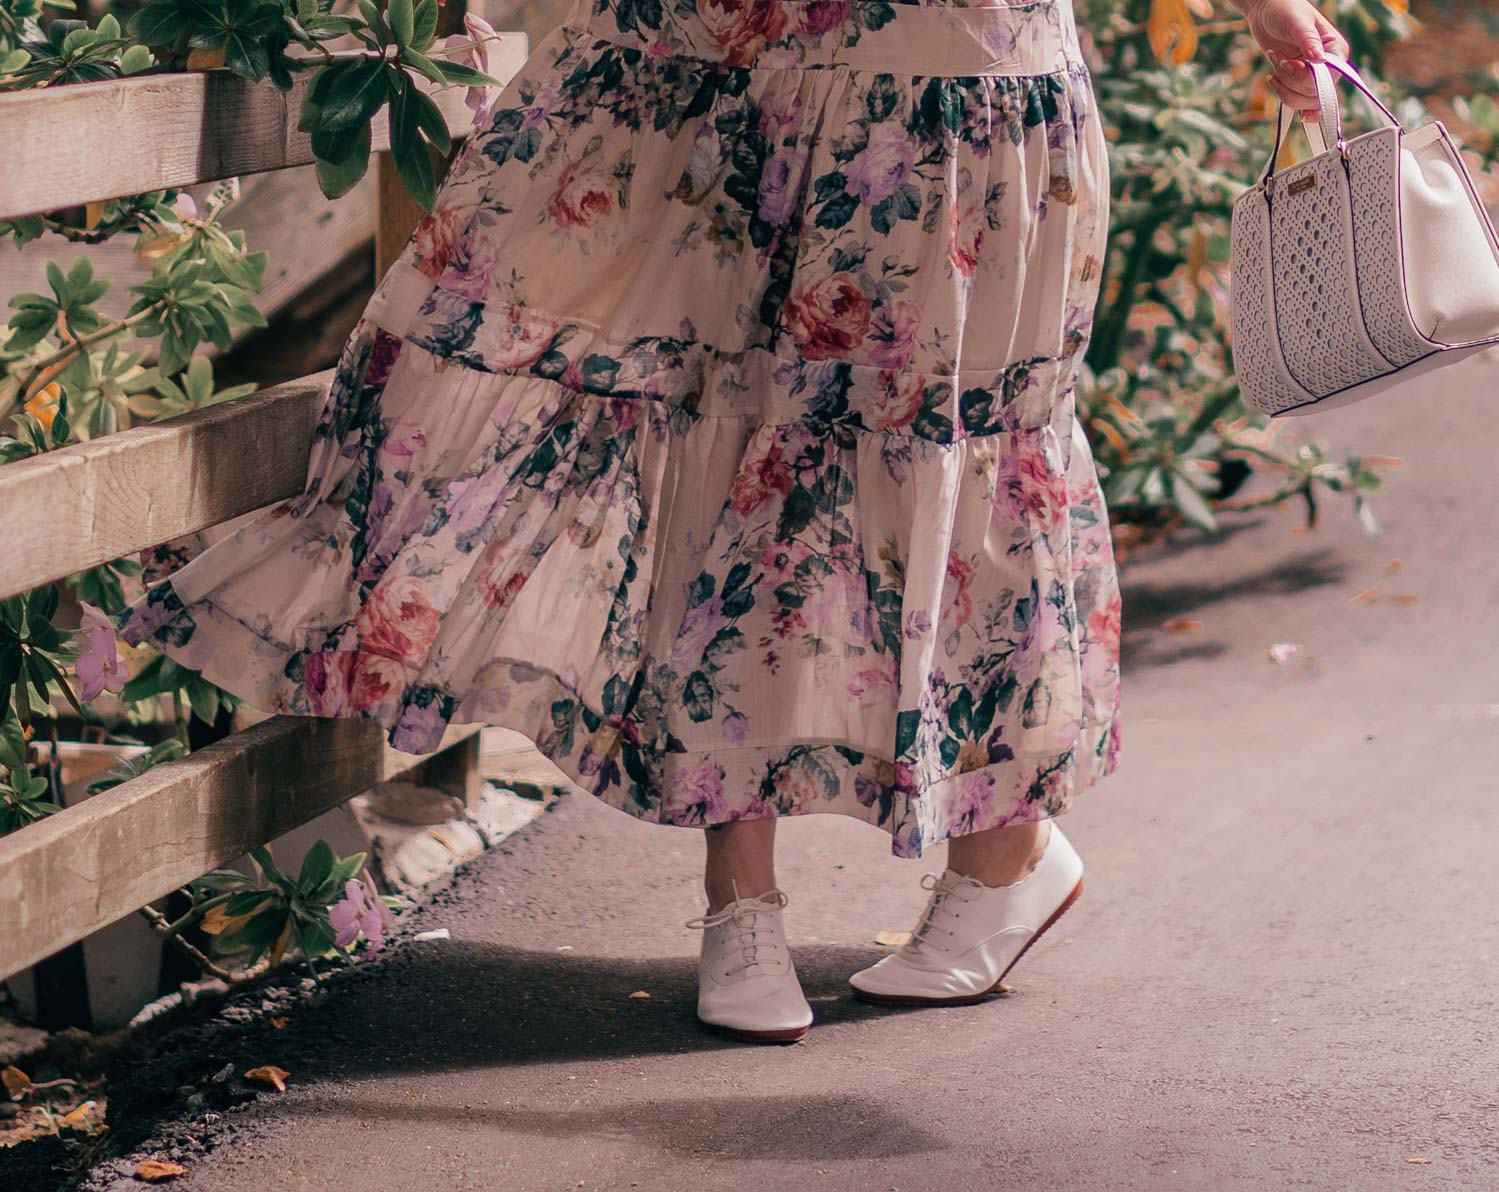 Feminine Fashion Blogger Elizabeth Hugen of Lizzie in Lace shares How to Create a Cottagecore Aesthetic Outfit featuring a floral chicwish dress and Anothersole shoes